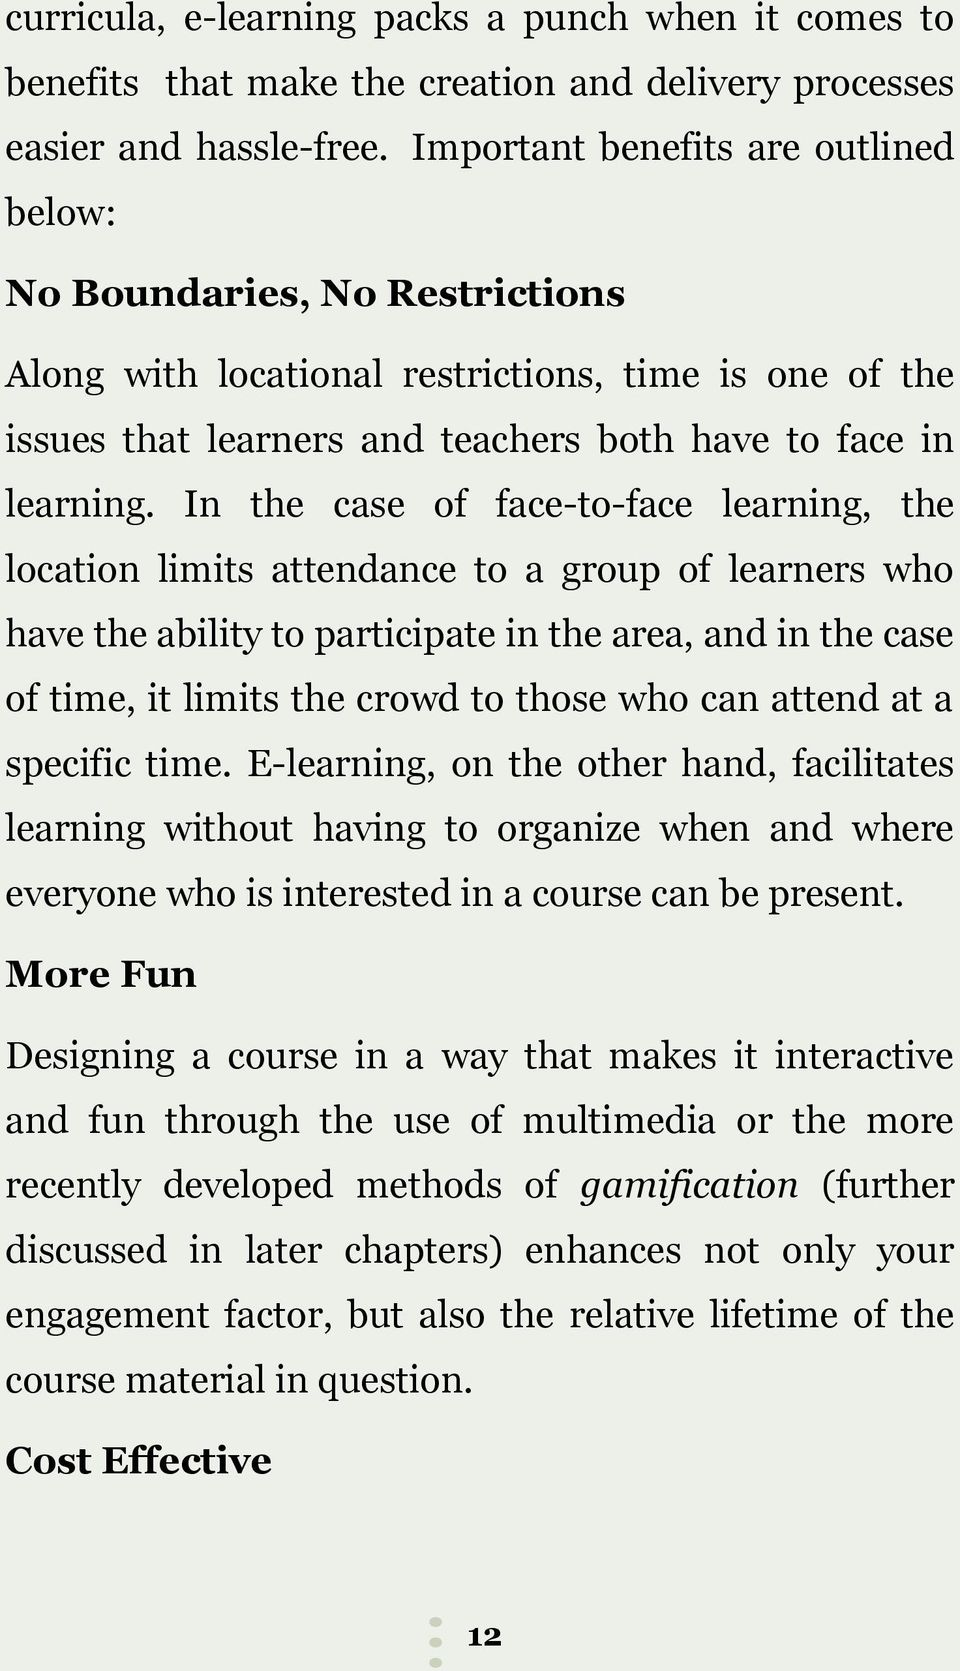 In the case of face-to-face learning, the location limits attendance to a group of learners who have the ability to participate in the area, and in the case of time, it limits the crowd to those who